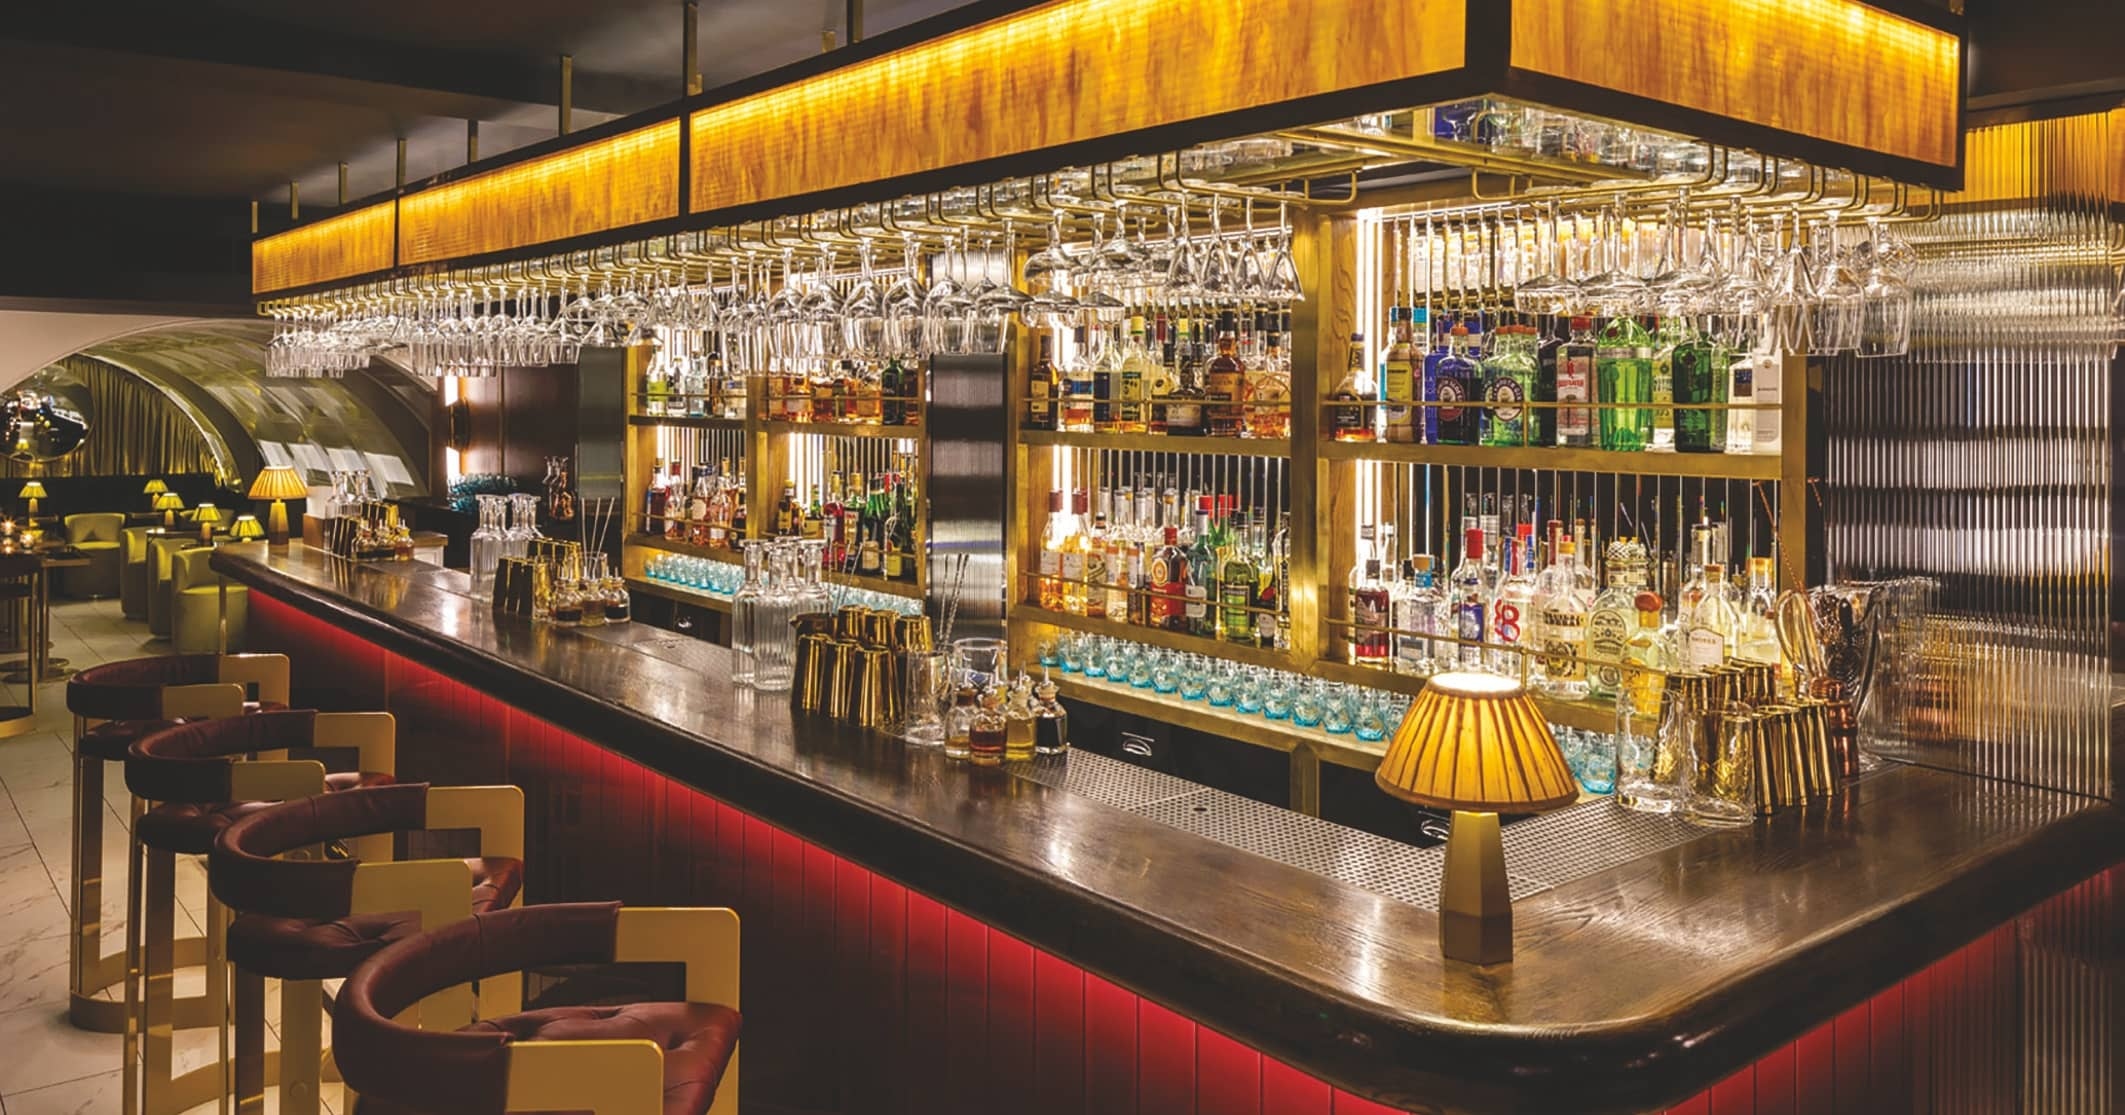 The Best Cocktails Bars To Get Your Spirits High!